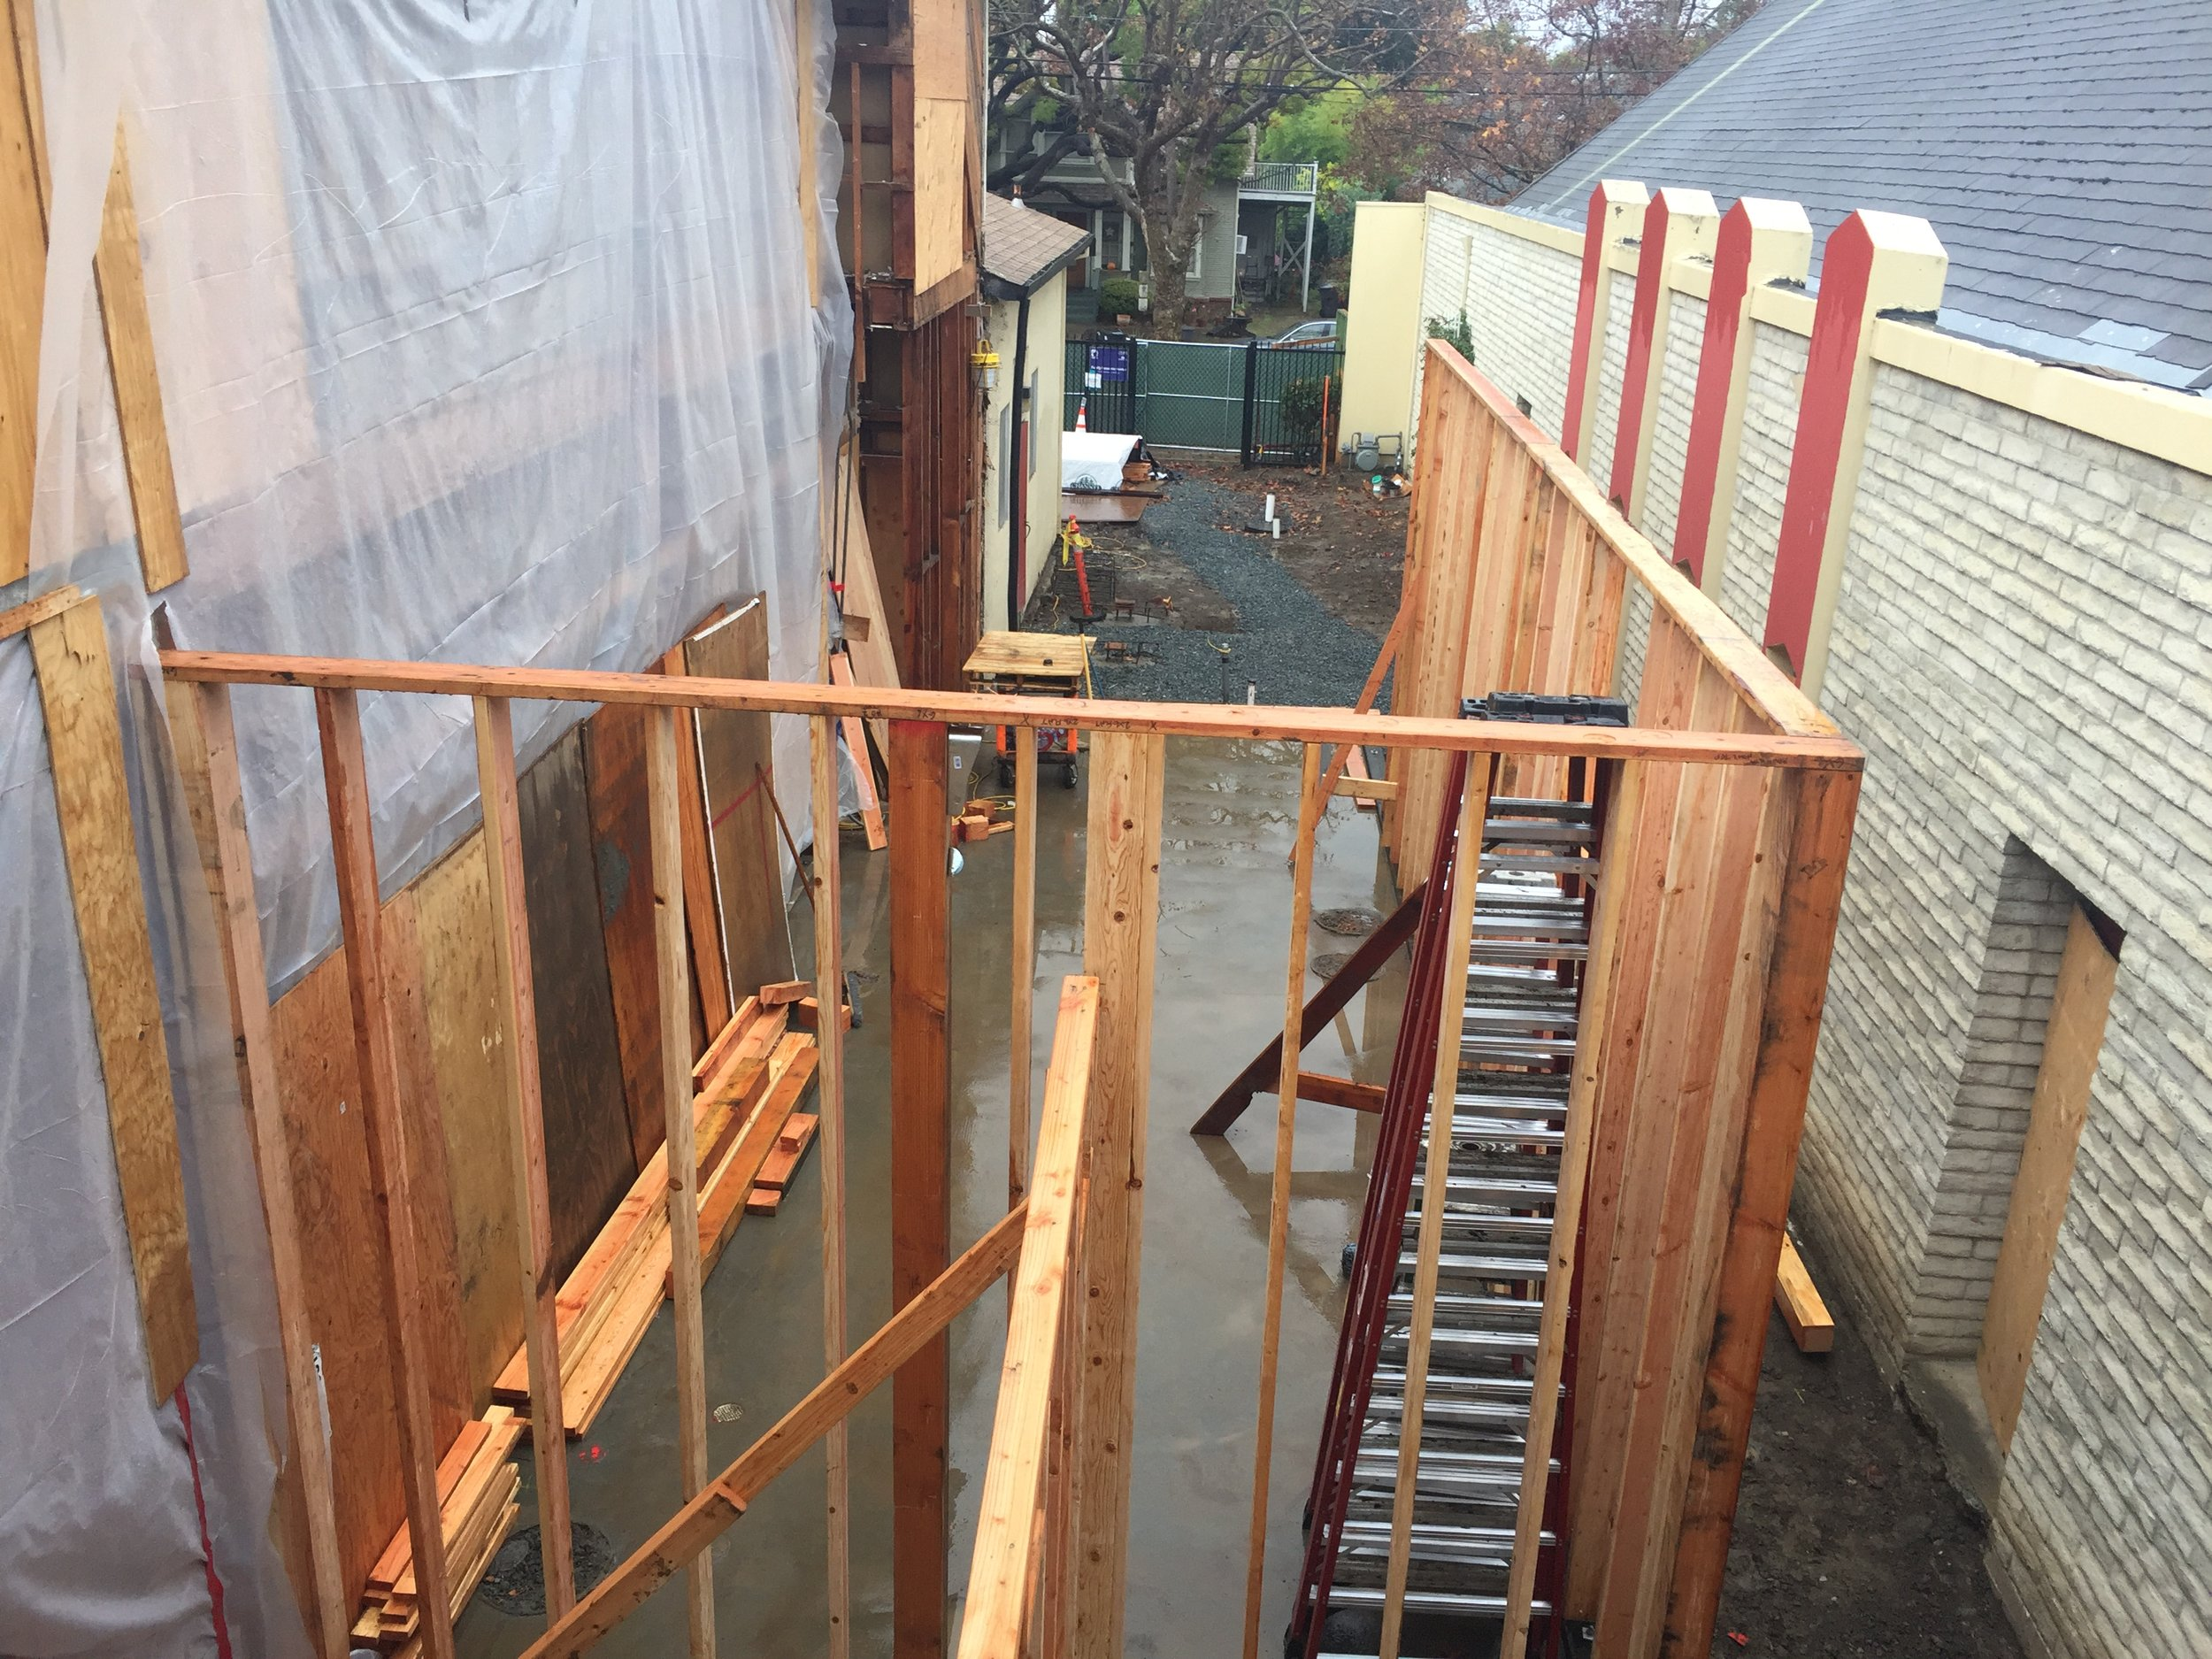 11-29-2018 Framing begins